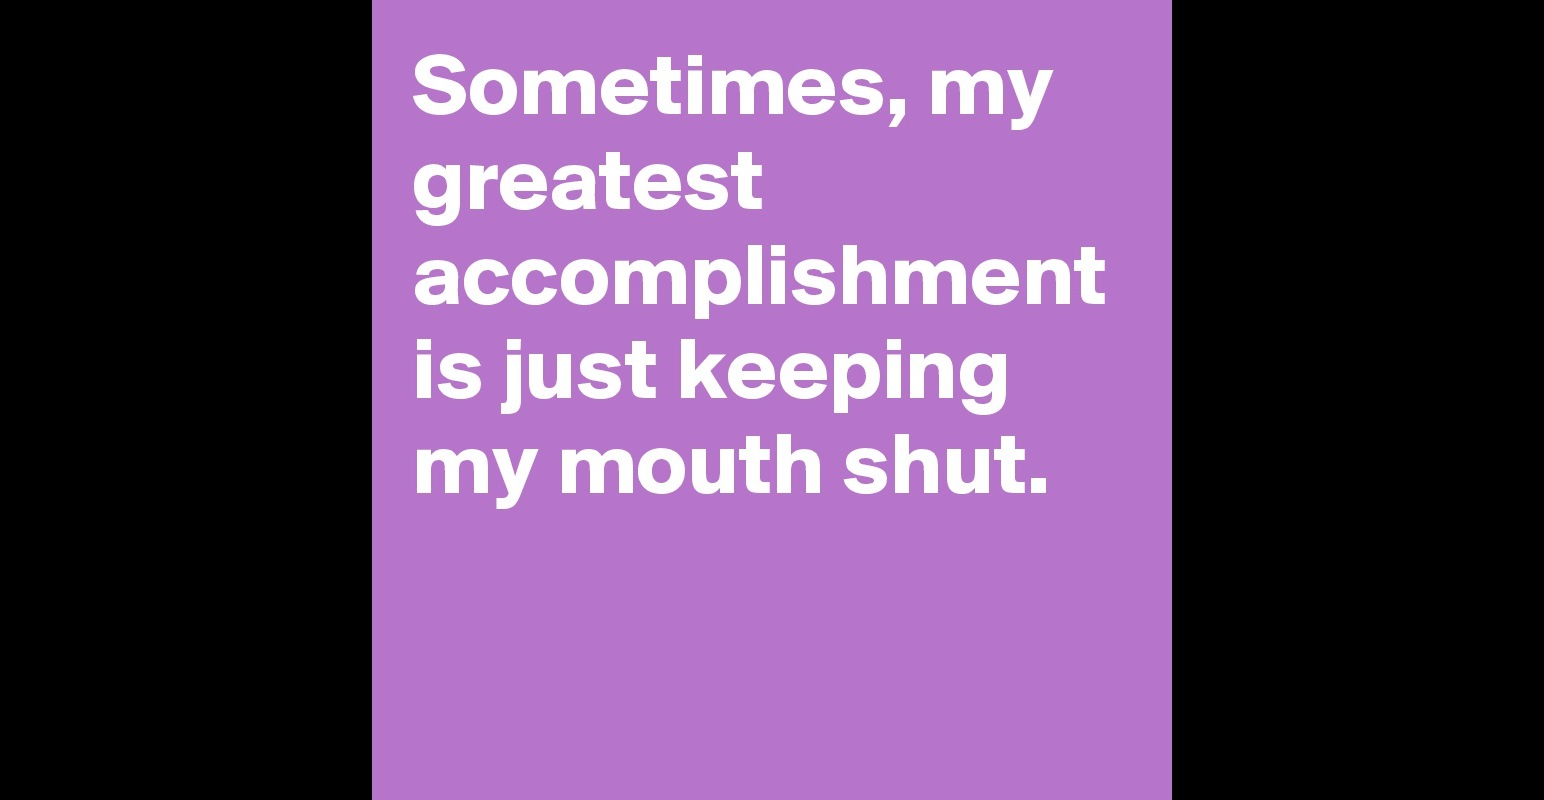 sometimes my greatest accomplishment is just keeping my mouth sometimes my greatest accomplishment is just keeping my mouth shut post by brenlouwin on boldomatic